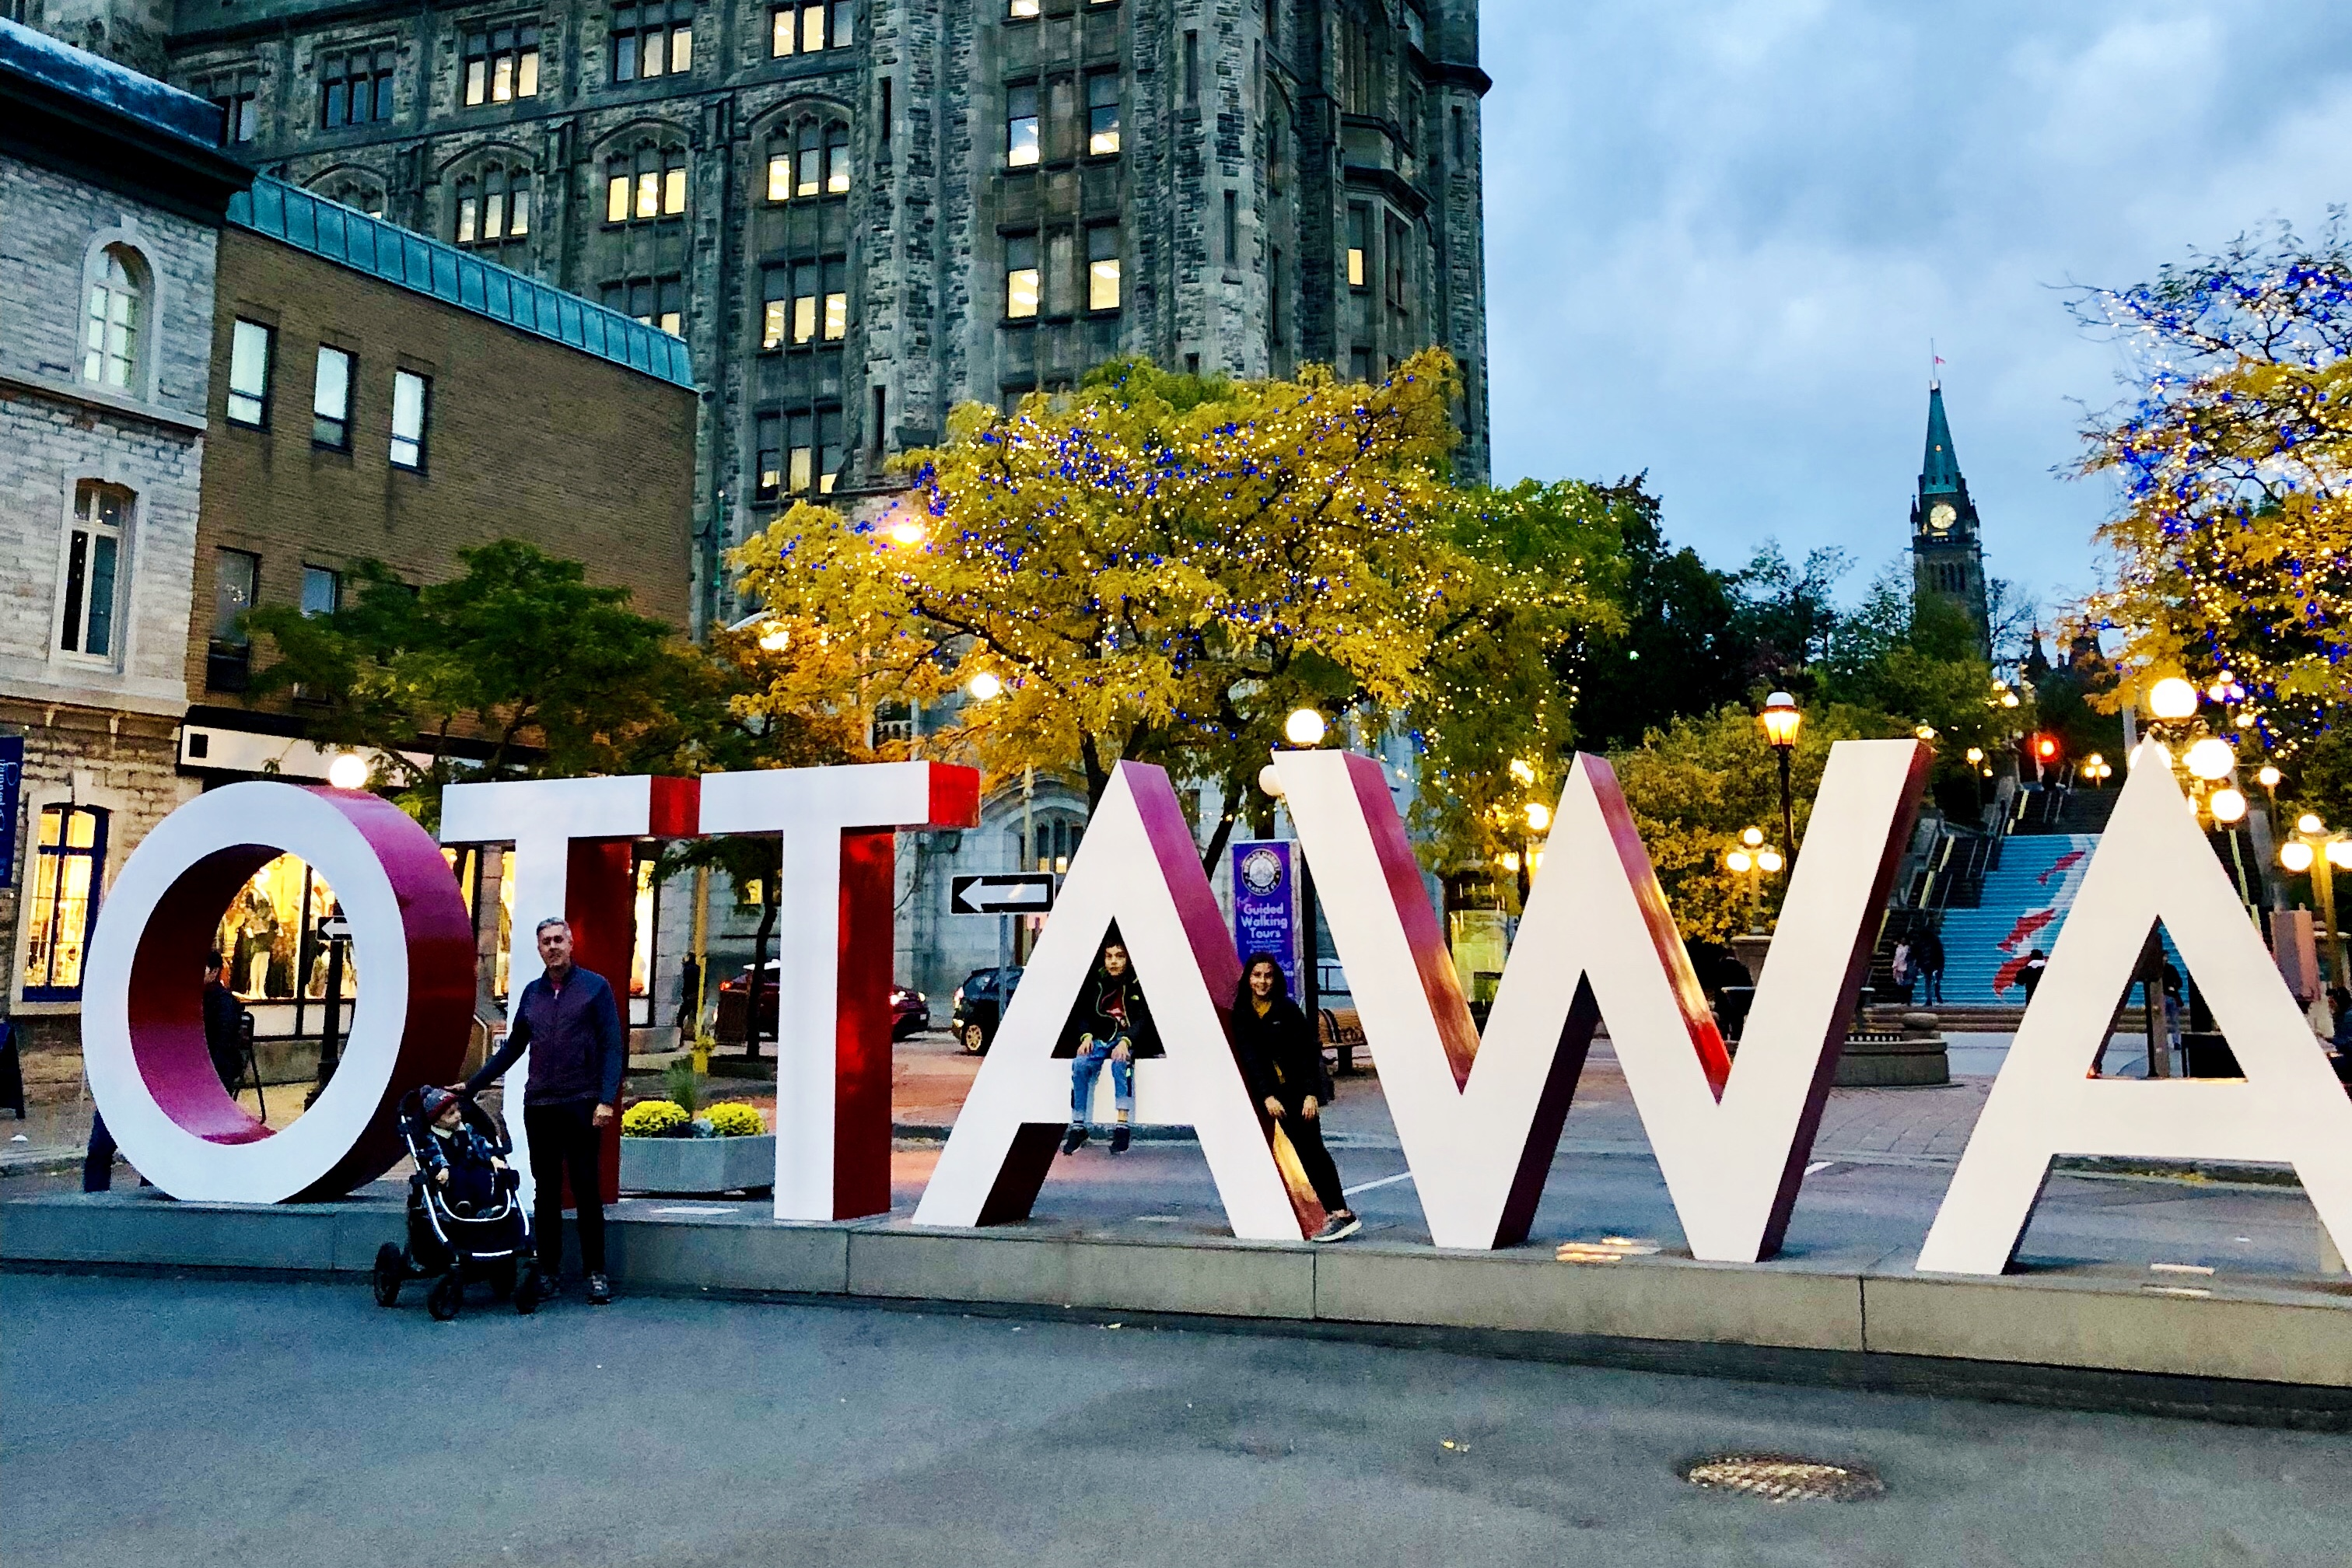 Family Travel: Things to do in Ottawa with Kids